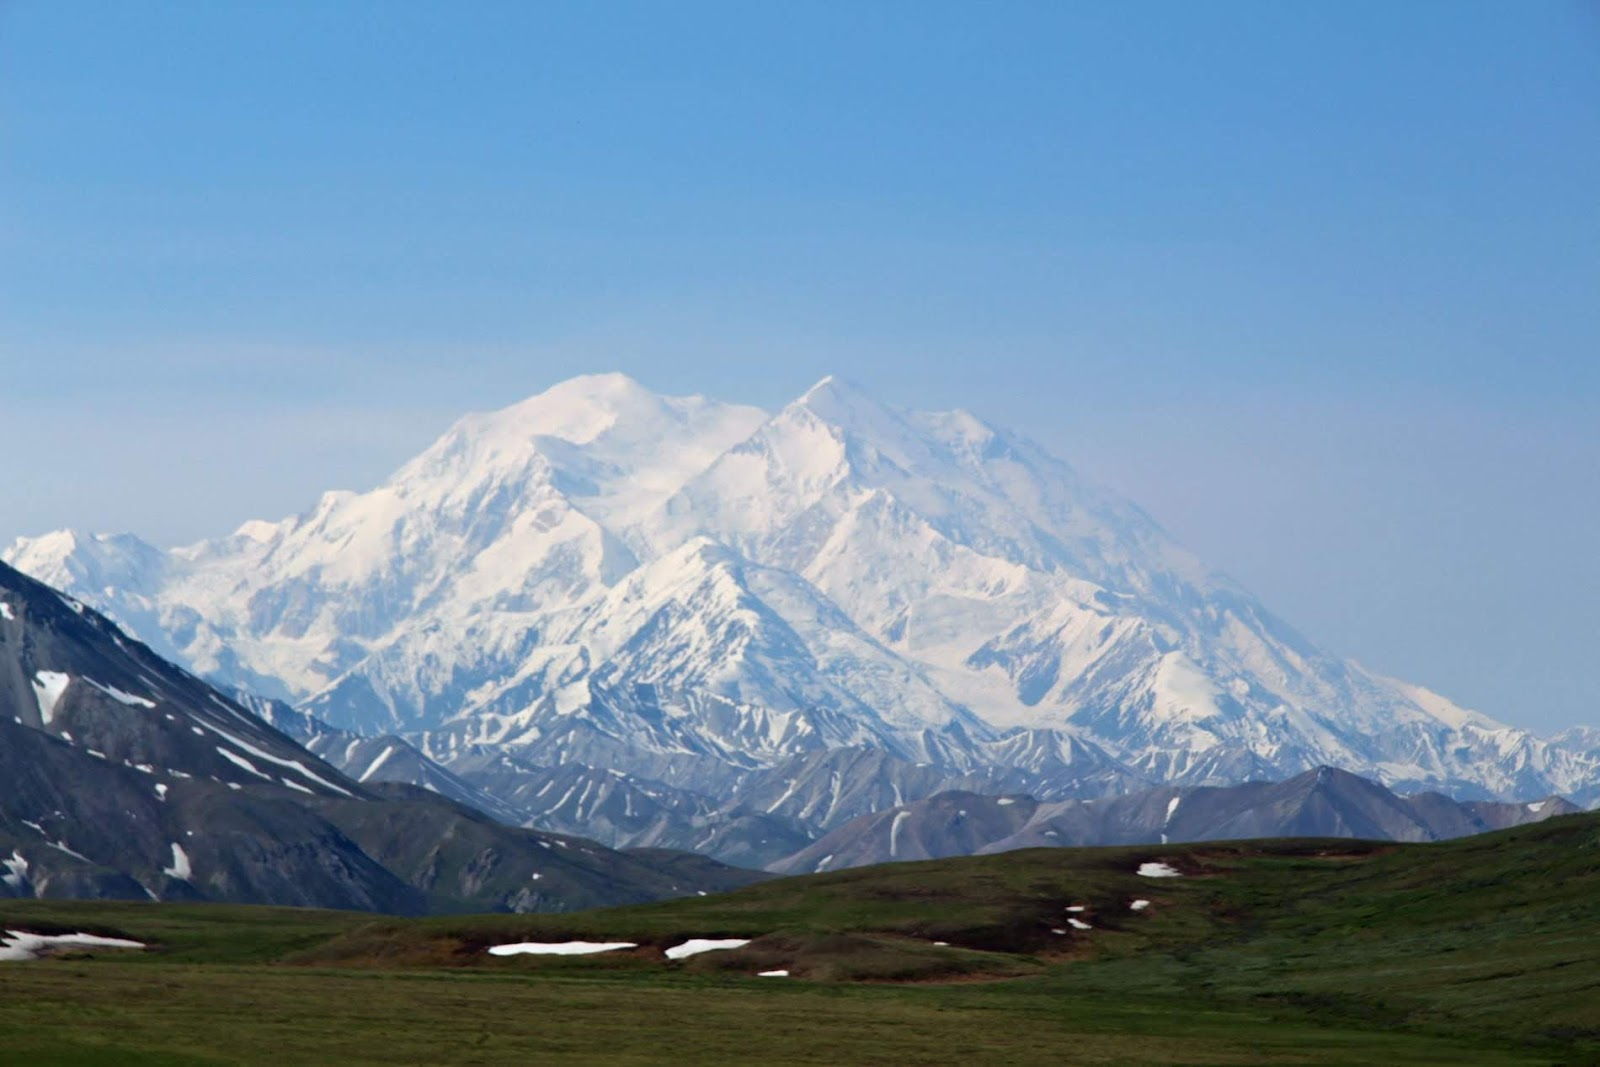 majestic denali wish i could take credit for this photo